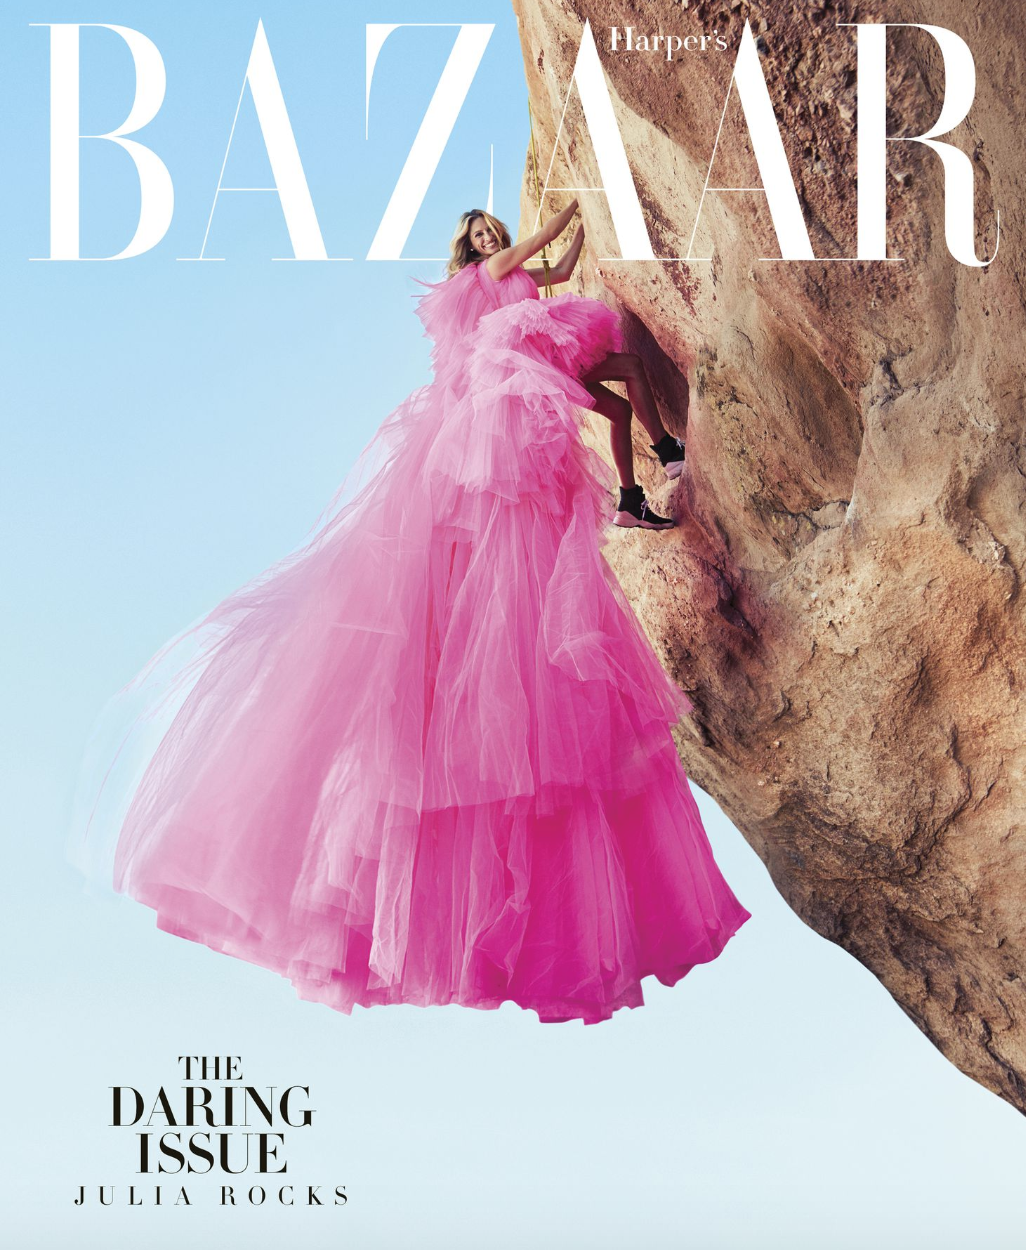 The cover of Harper's Bazaar magazine, with Julia Roberts clinging to a rock outcropping in a very big, very pink tulle dress.